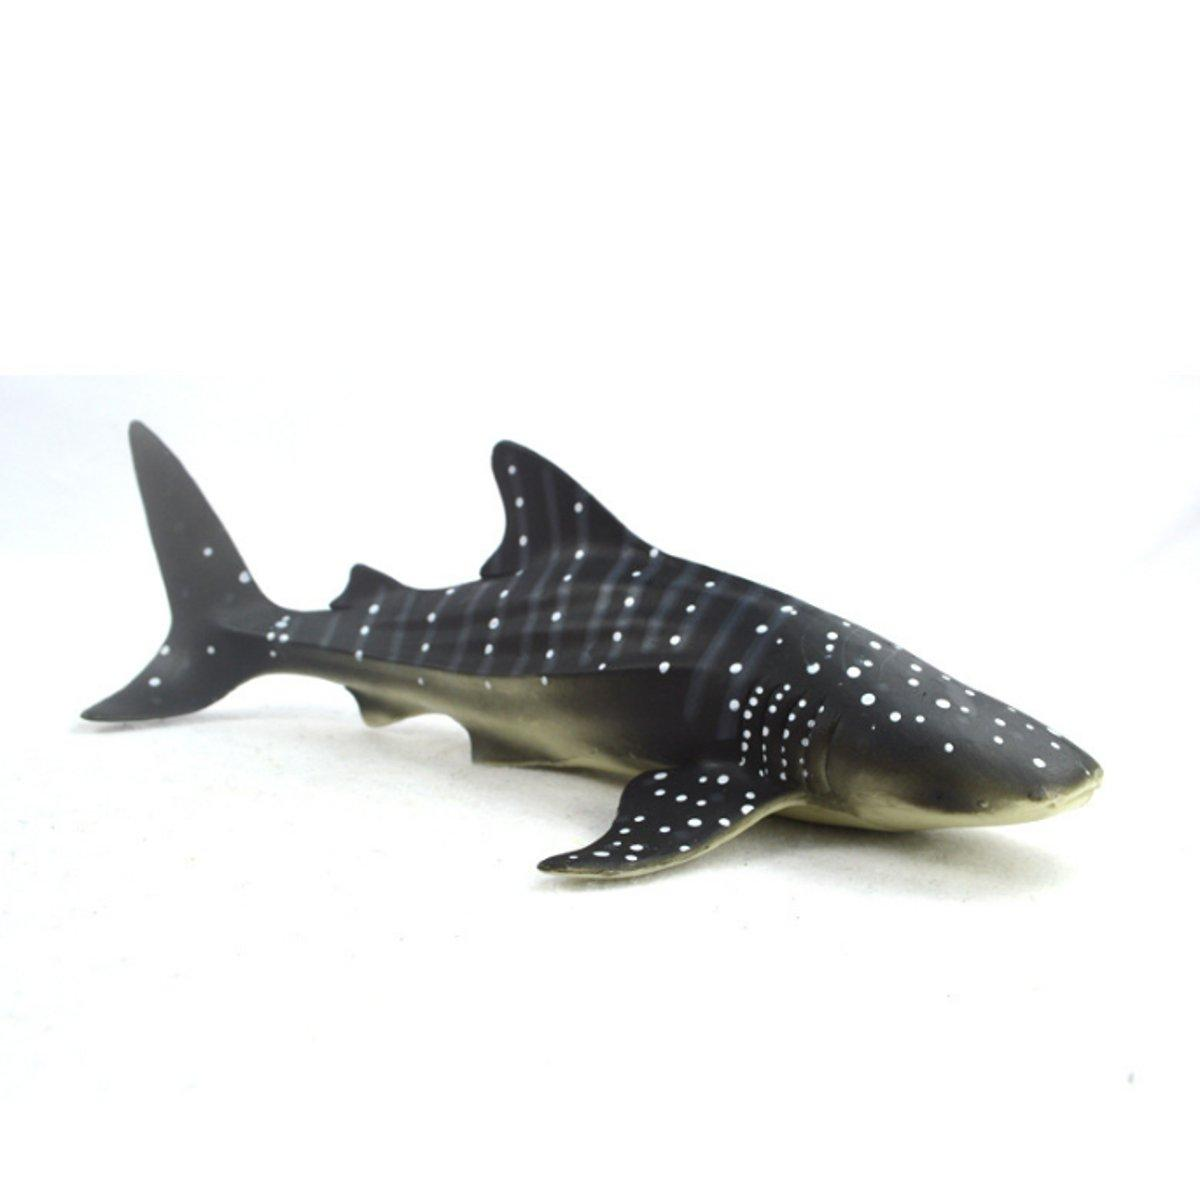 28cm Realistic Whale Shark Sea Animal Figure Solid Plastic Ocean Toy Diecast Model